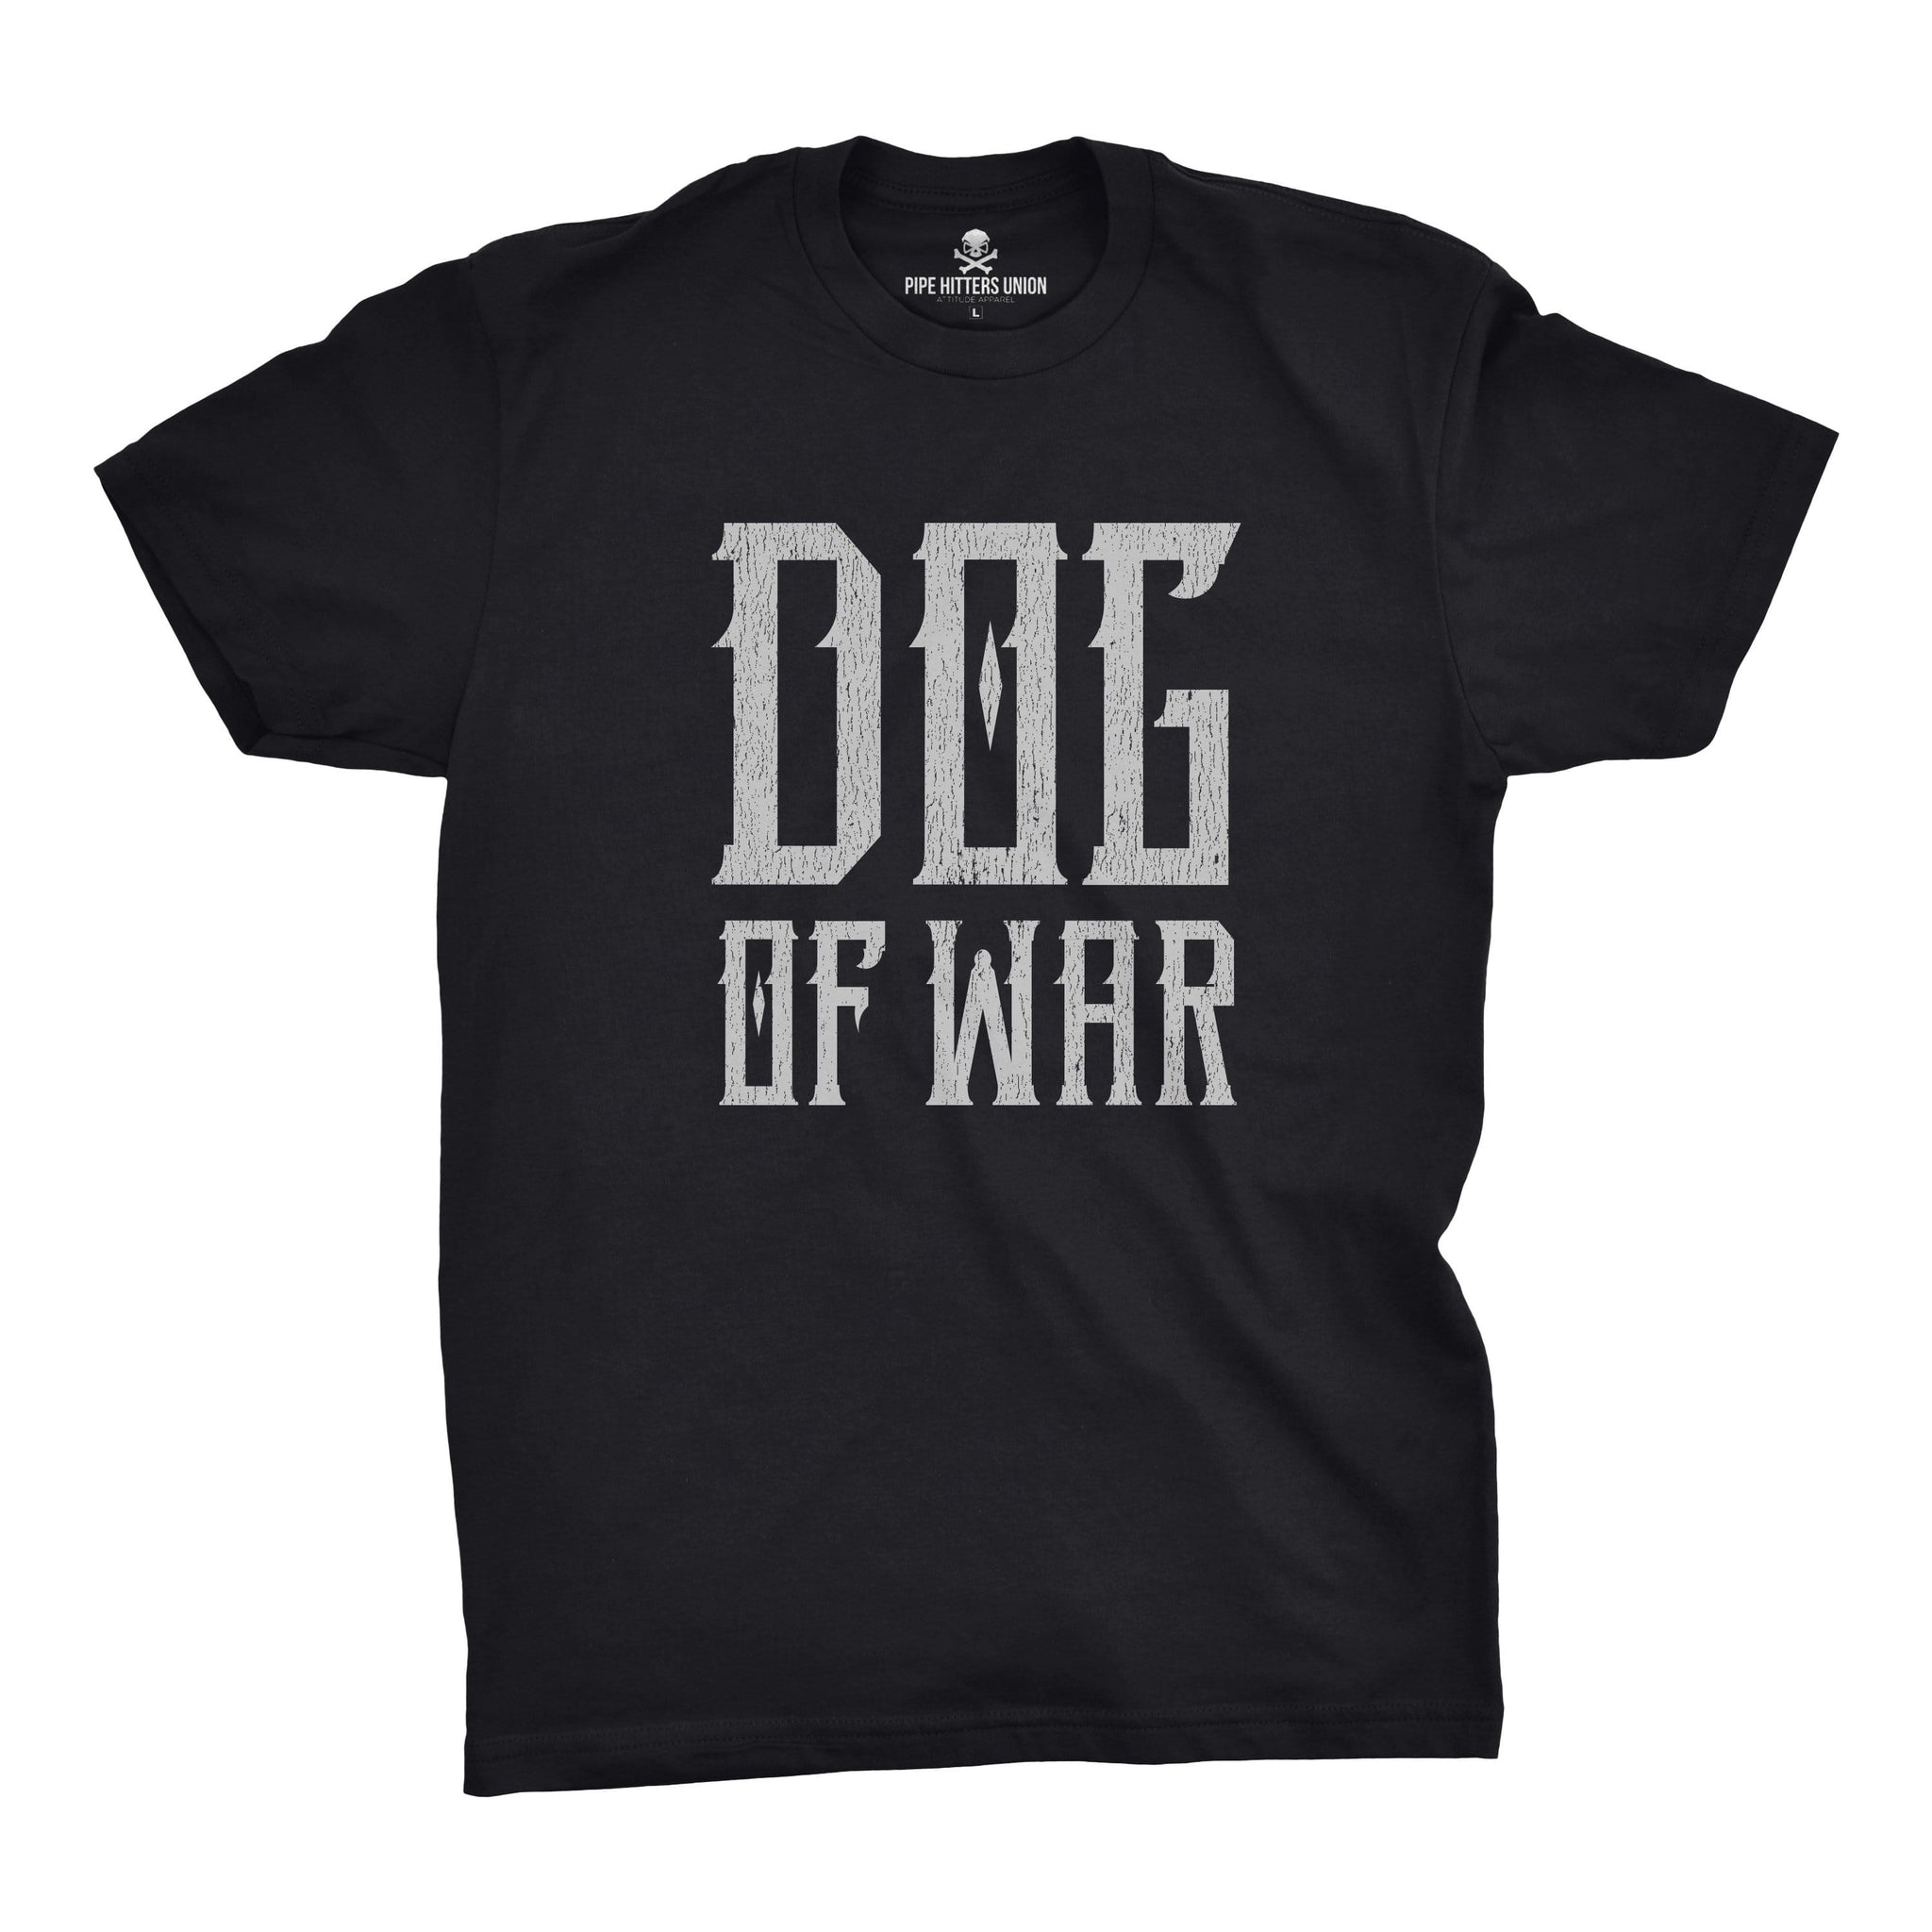 Dog of War - Black - T-Shirts - Pipe Hitters Union